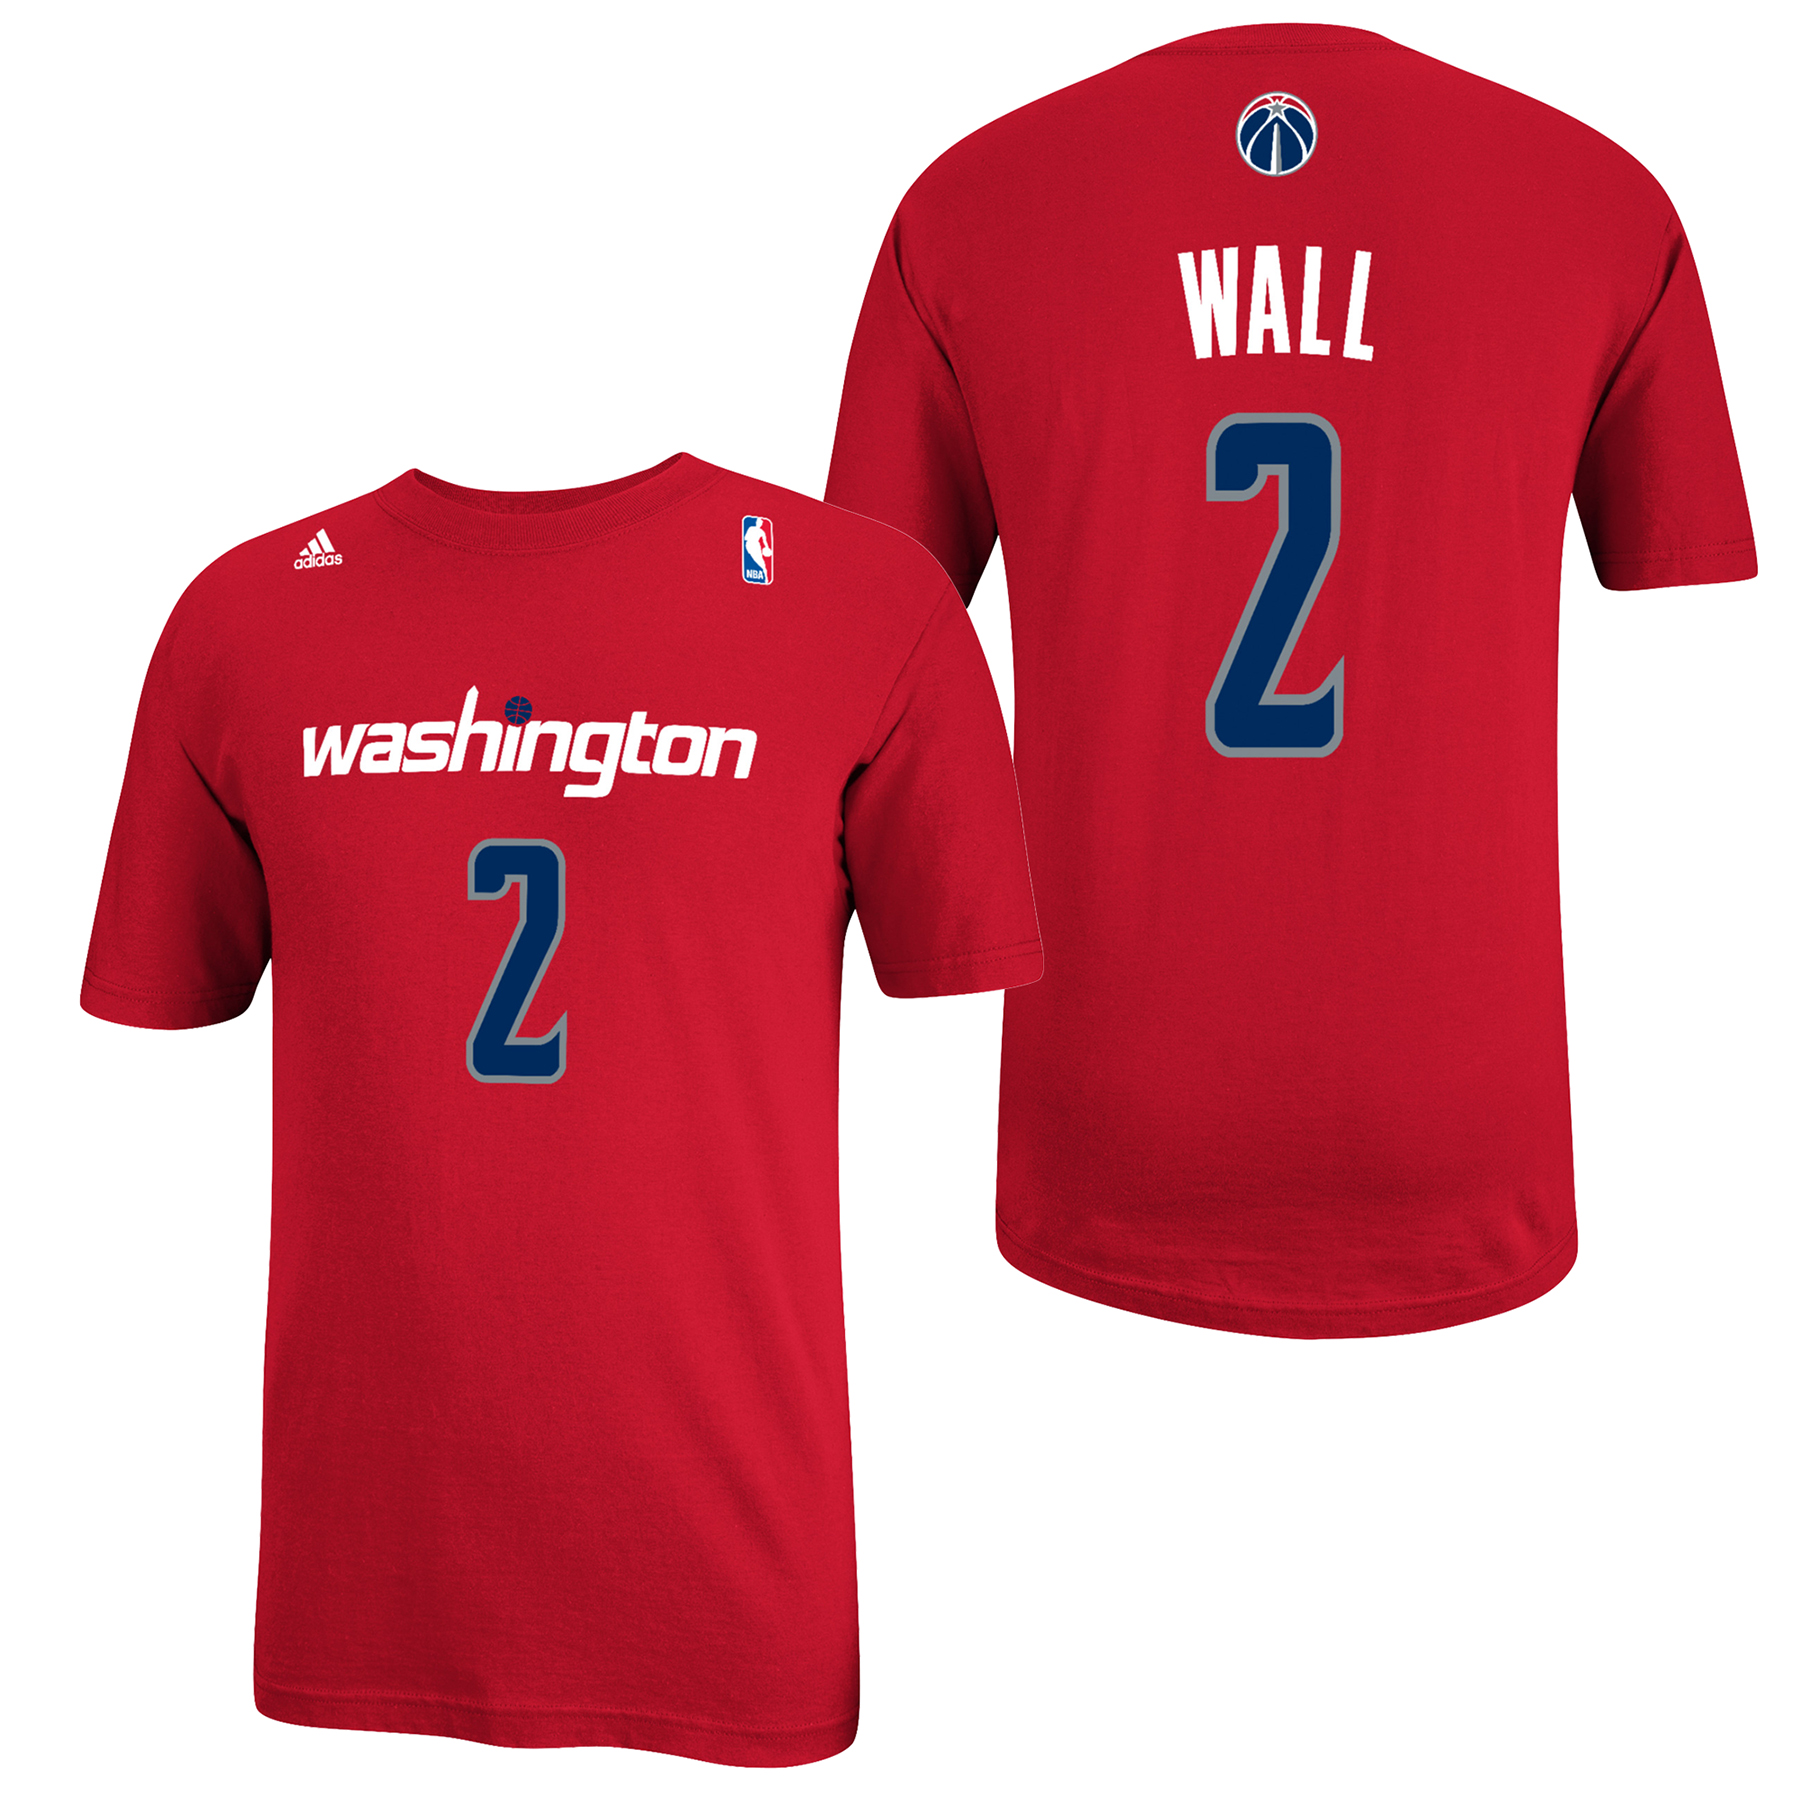 Washington Wizards adidas Name & Number T-Shirt - John Wall